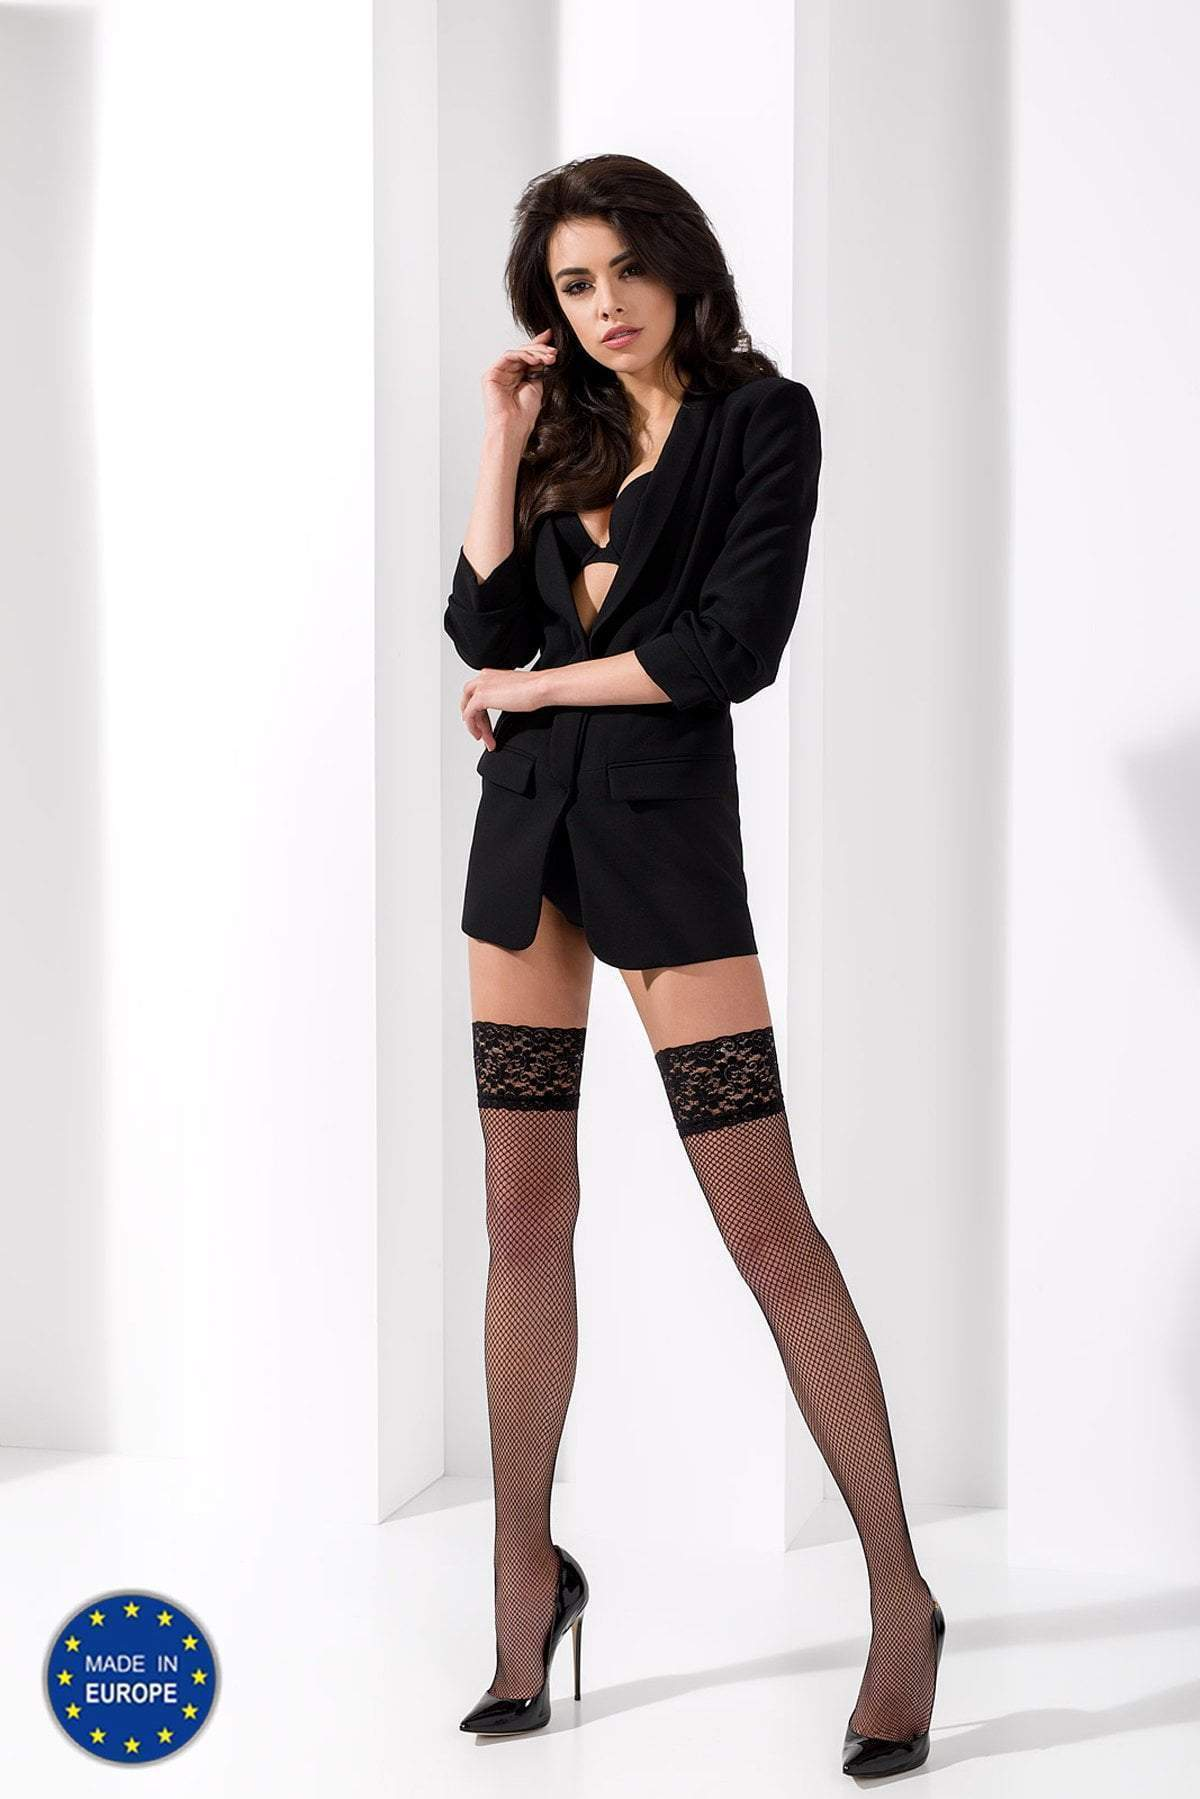 Passion passion Hold Ups S/M / Black Fishnet Hold Ups ST020